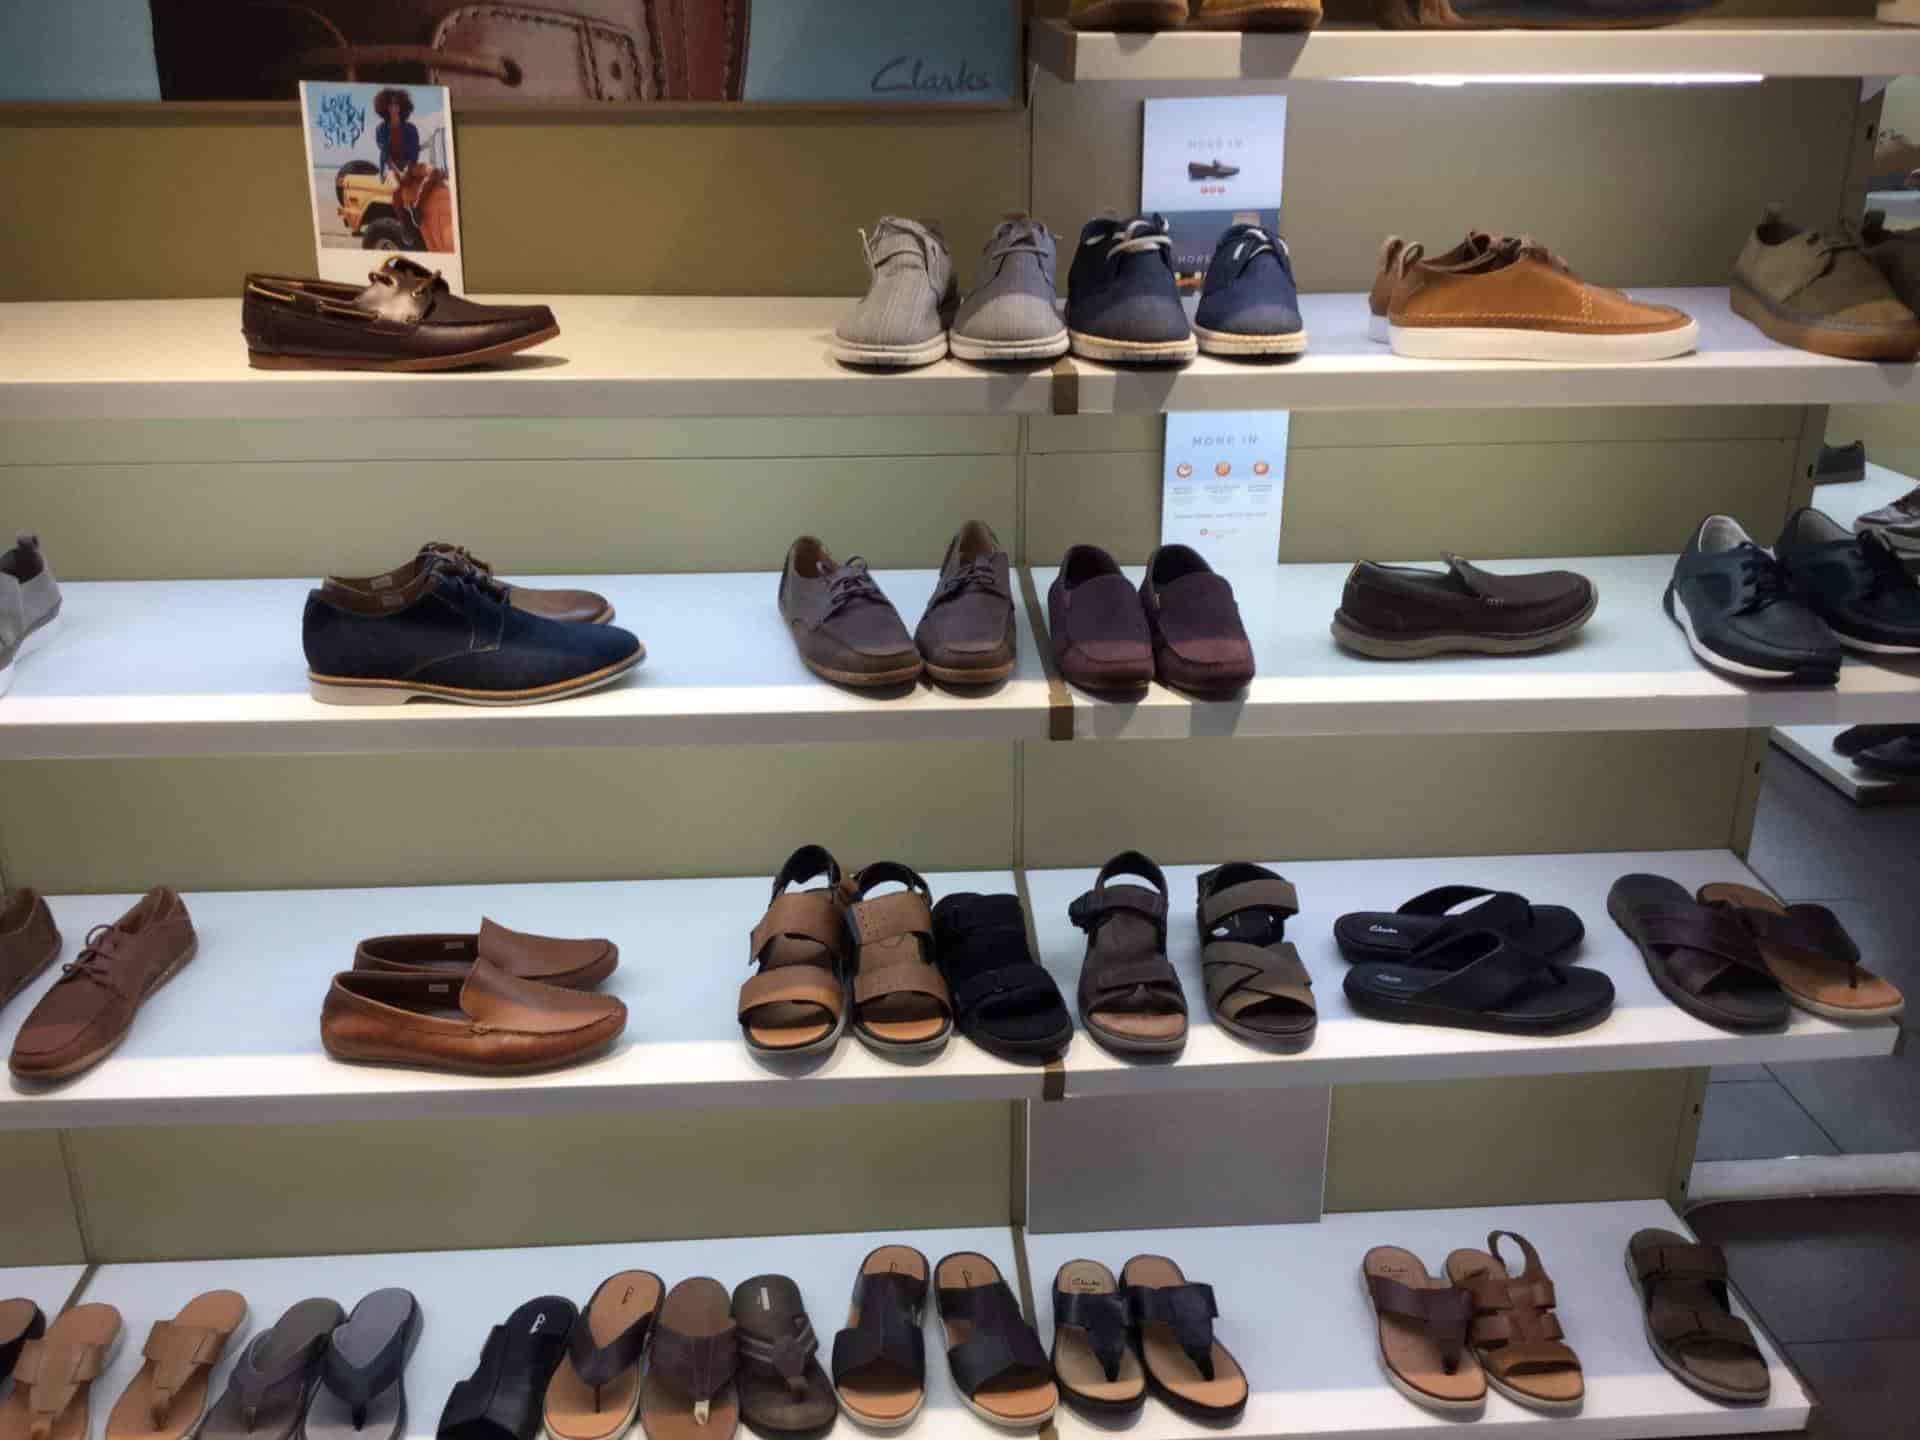 f51b80bd06 Clarks Store, C G Road - Shoe Dealers in Ahmedabad - Justdial